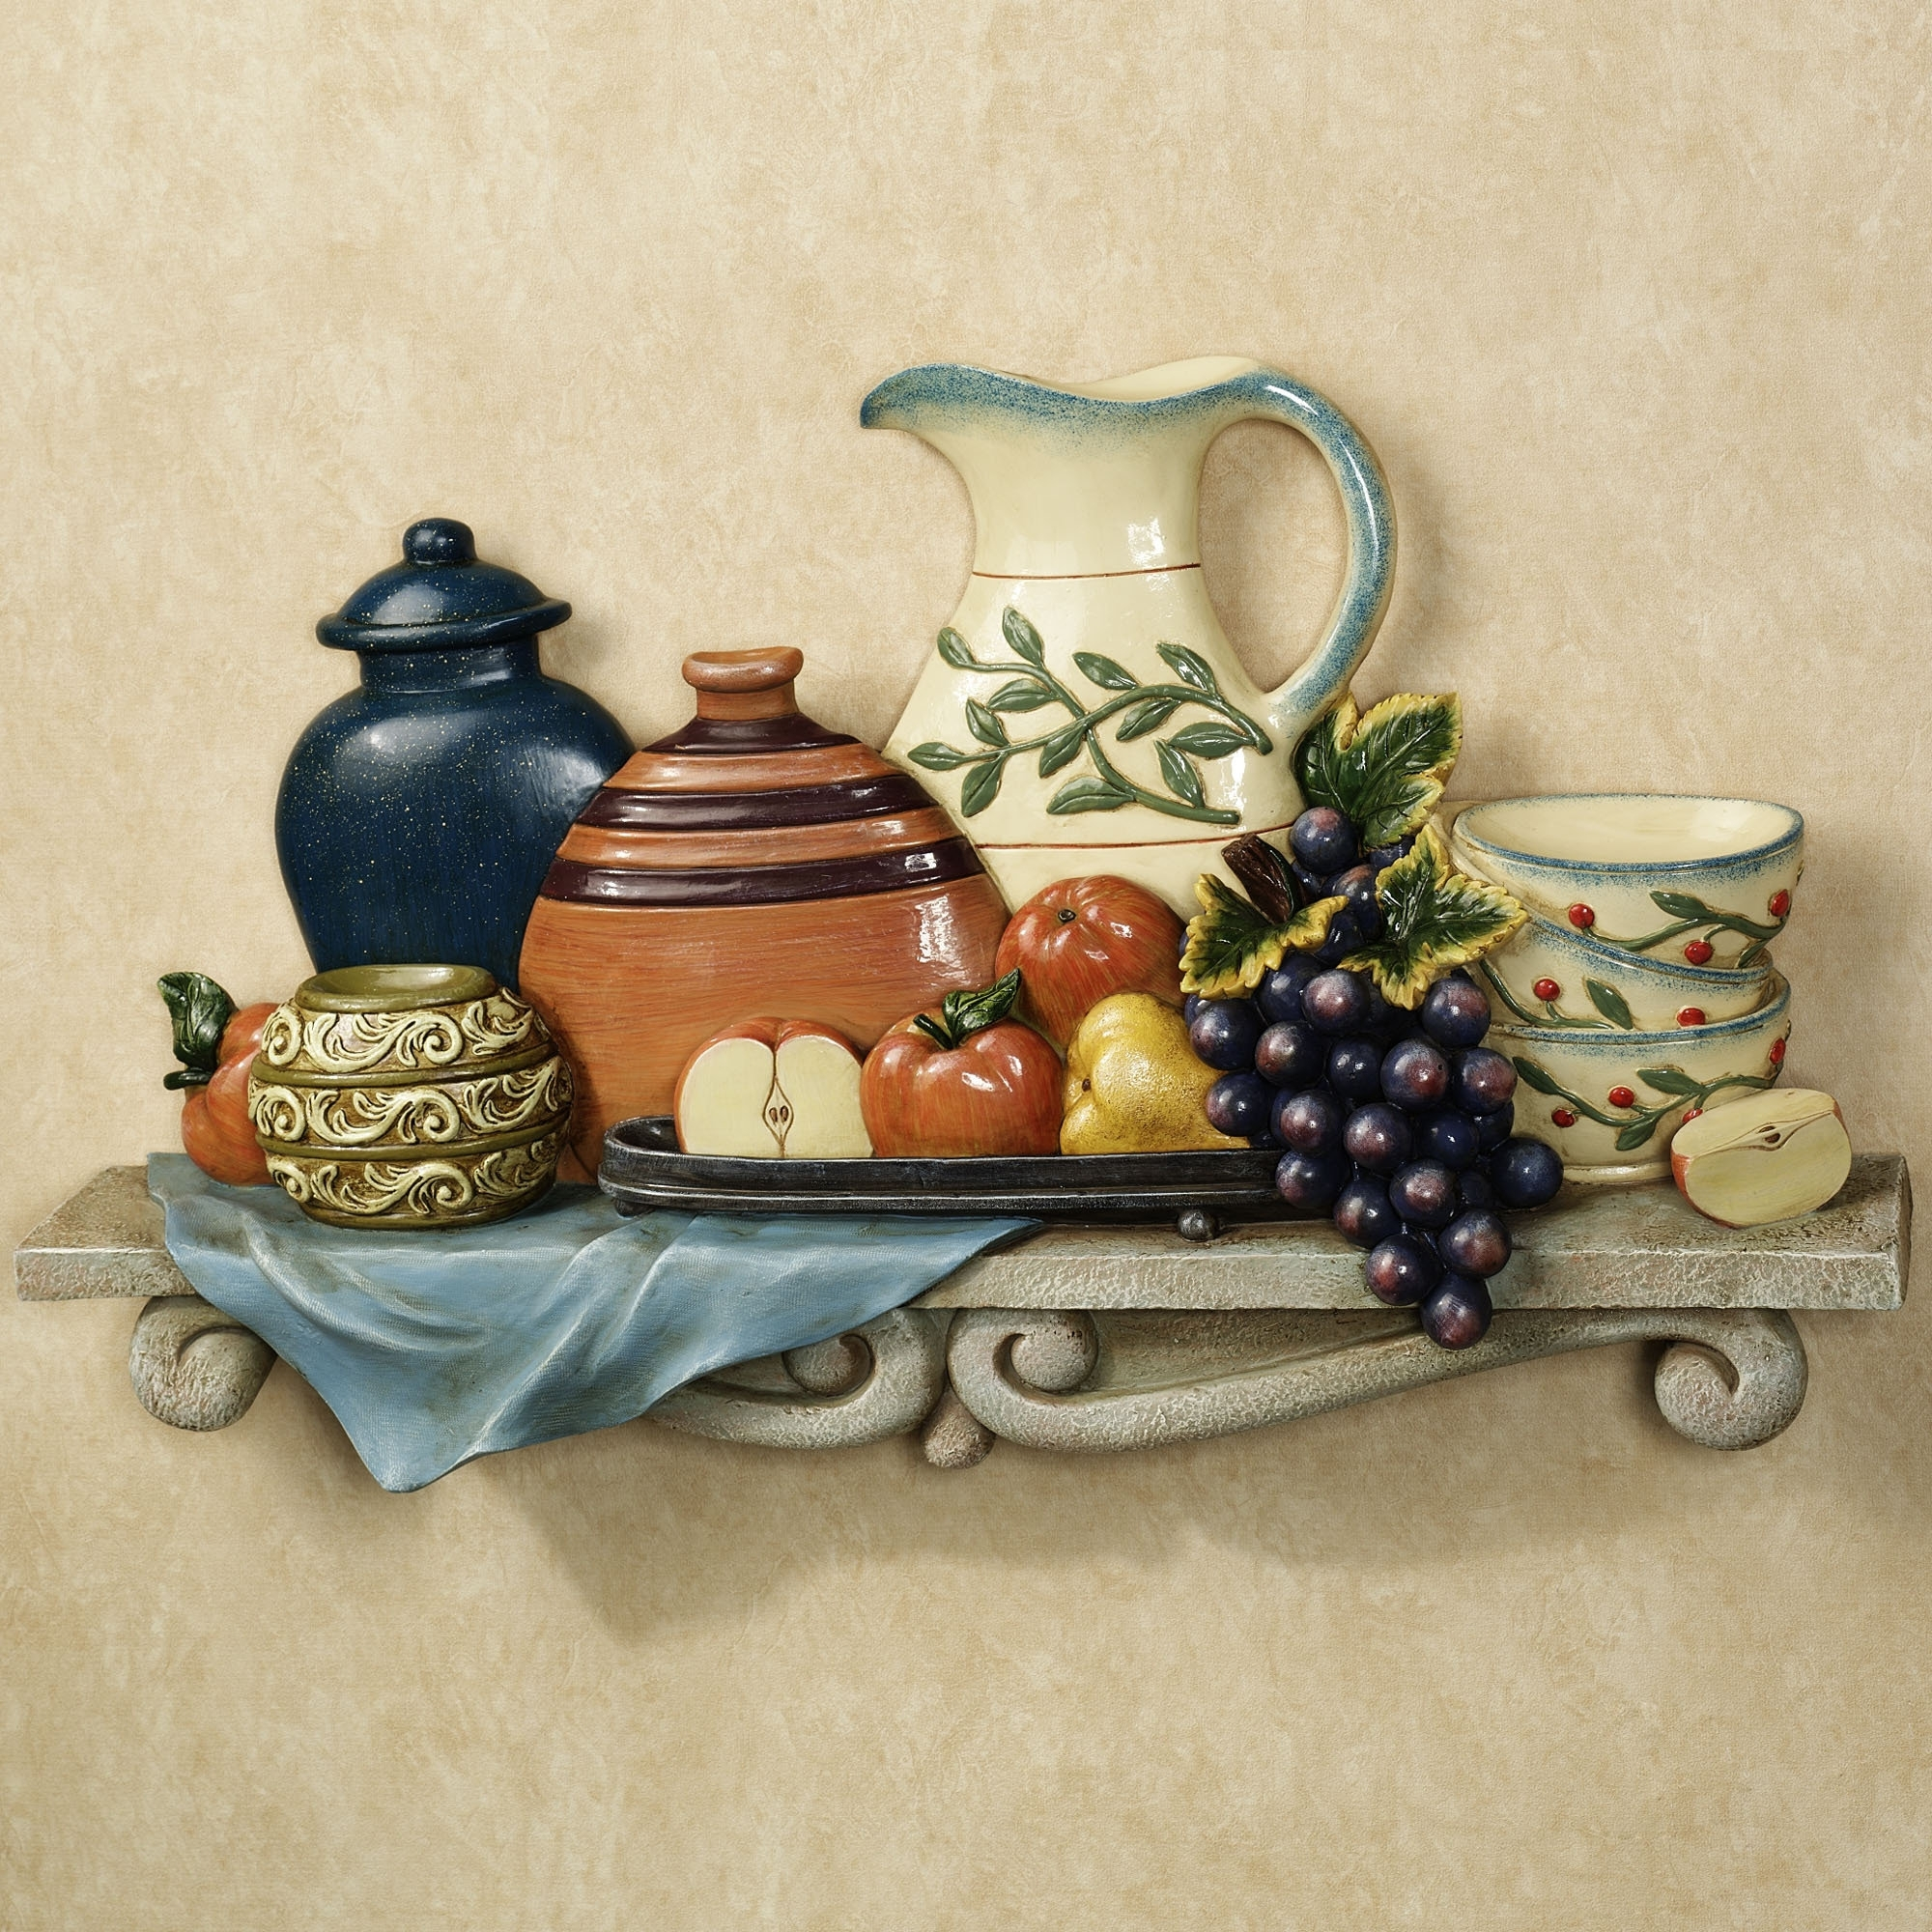 Most Recently Released Italian Wall Art For Bathroom Intended For Kitchen Style: Tuscan Kitchen Wall Decor For Welcoming Ambience (View 3 of 15)